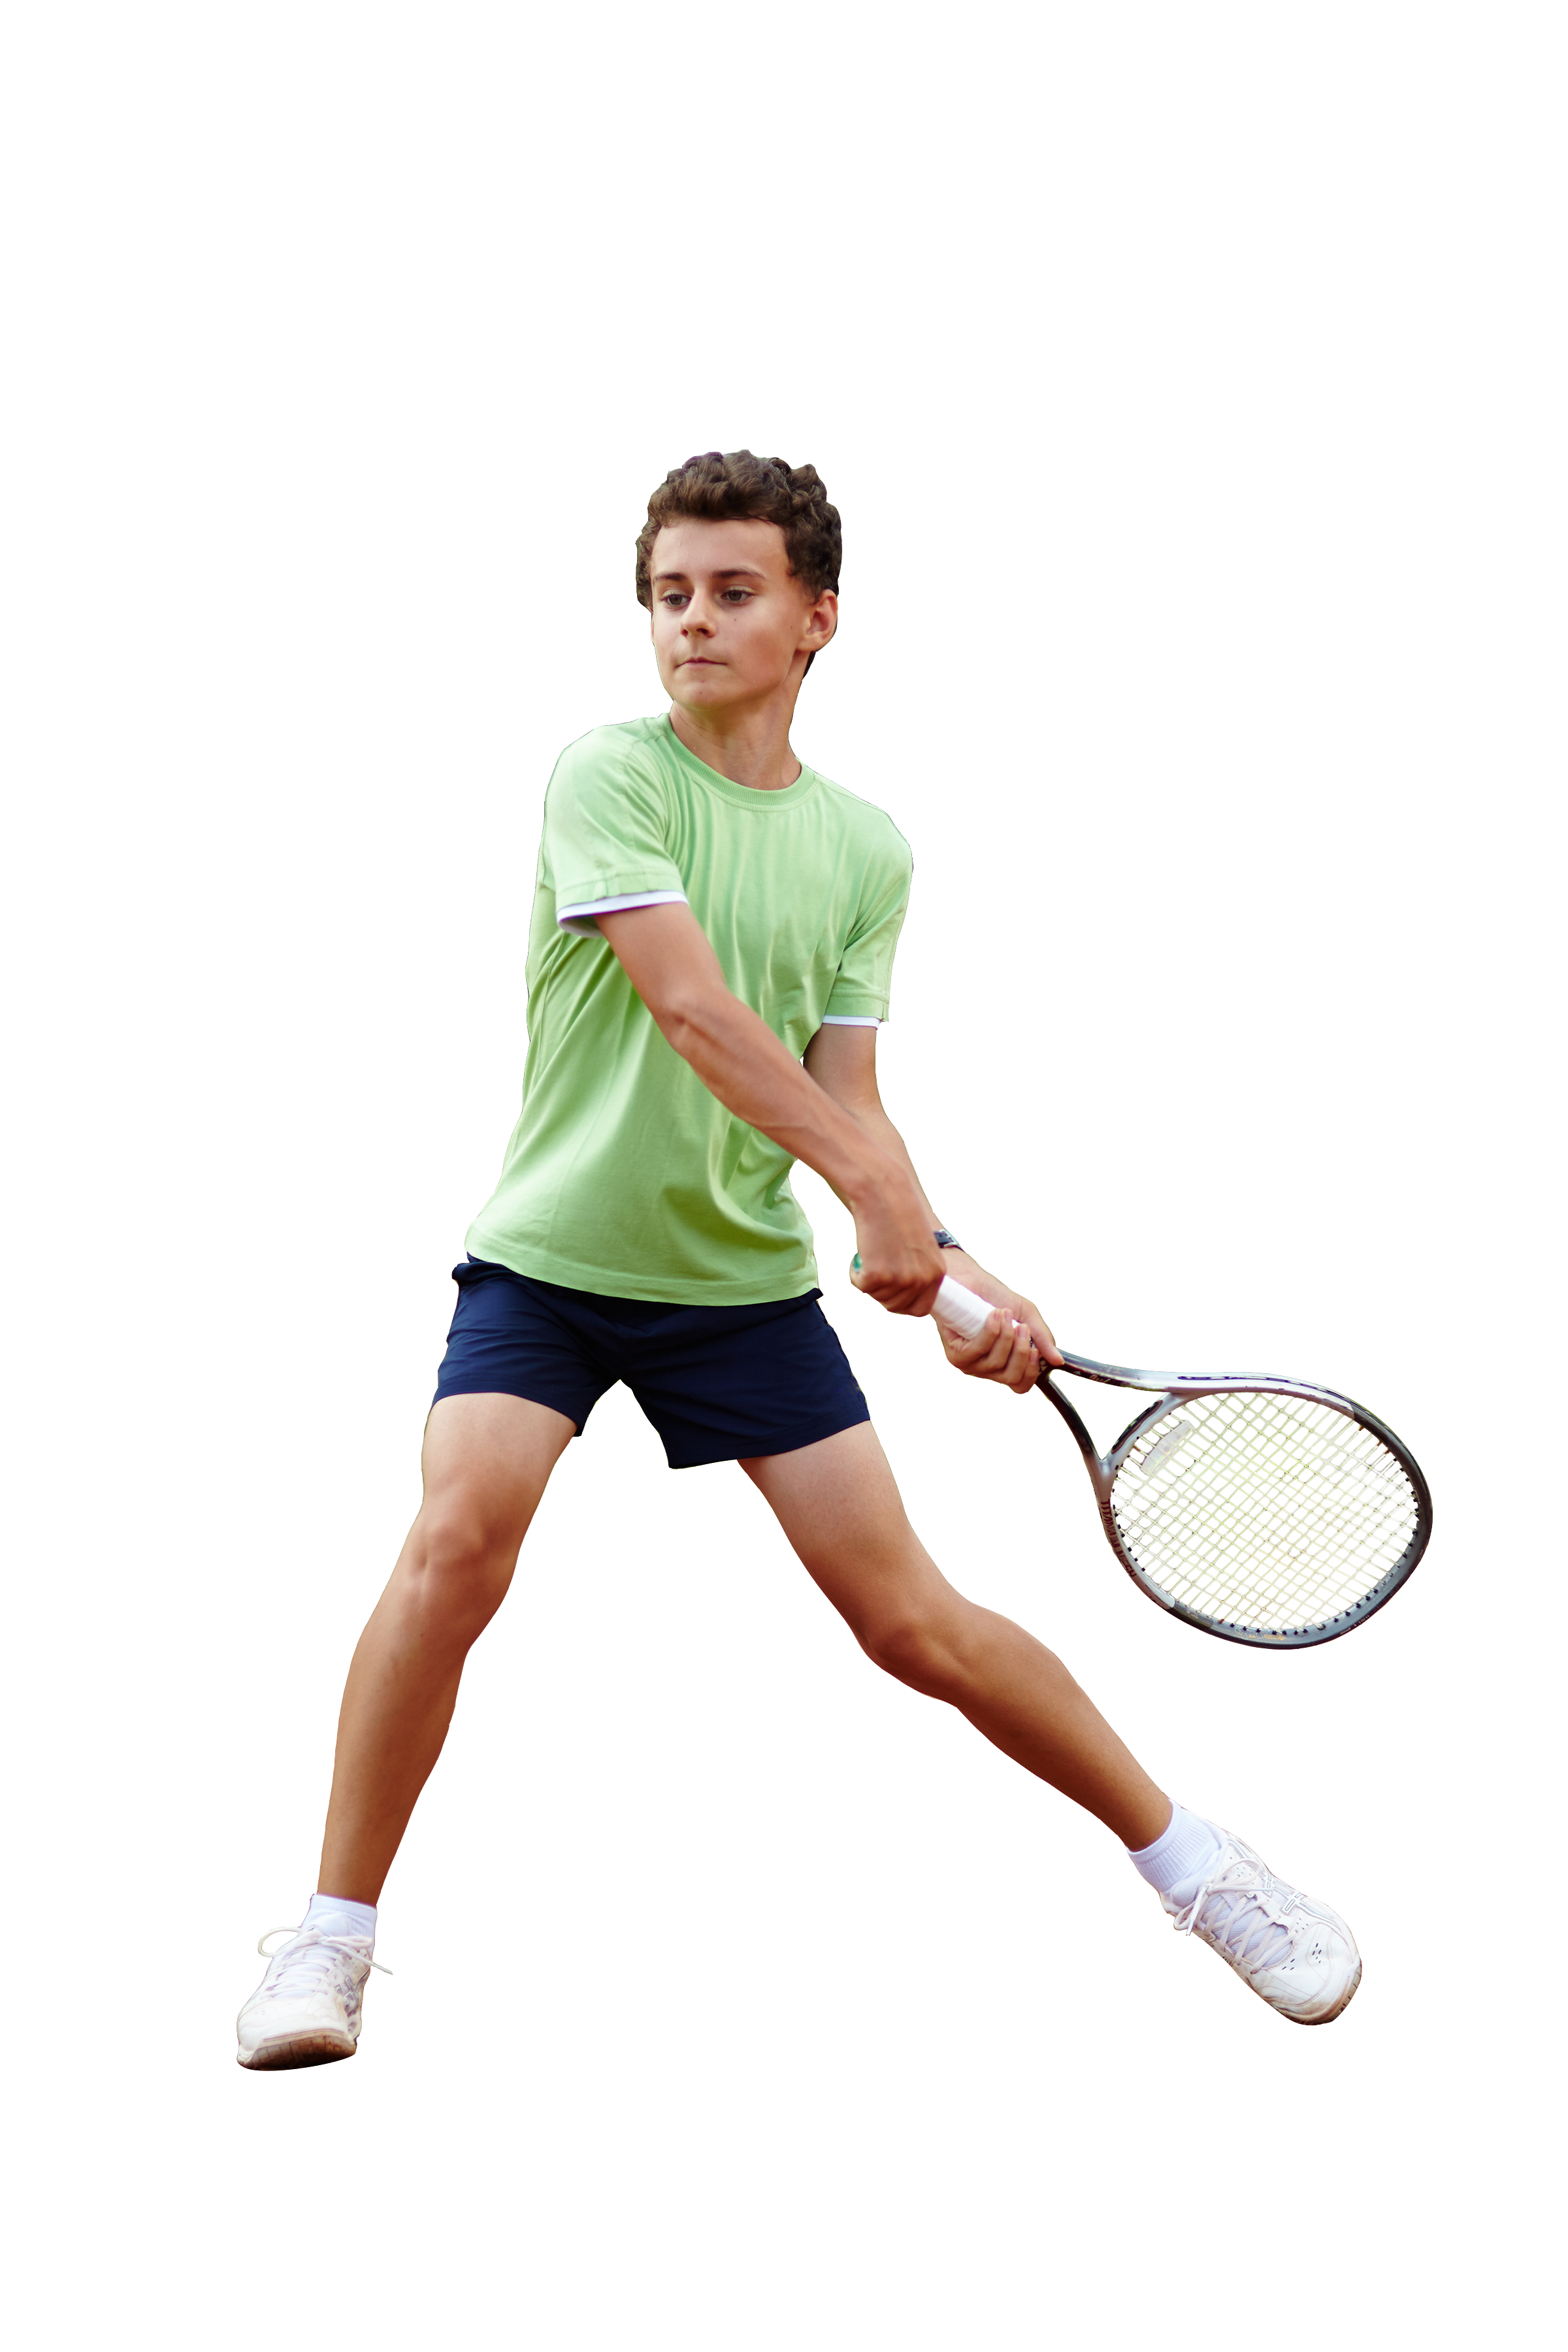 Tennis Player PNG Image.